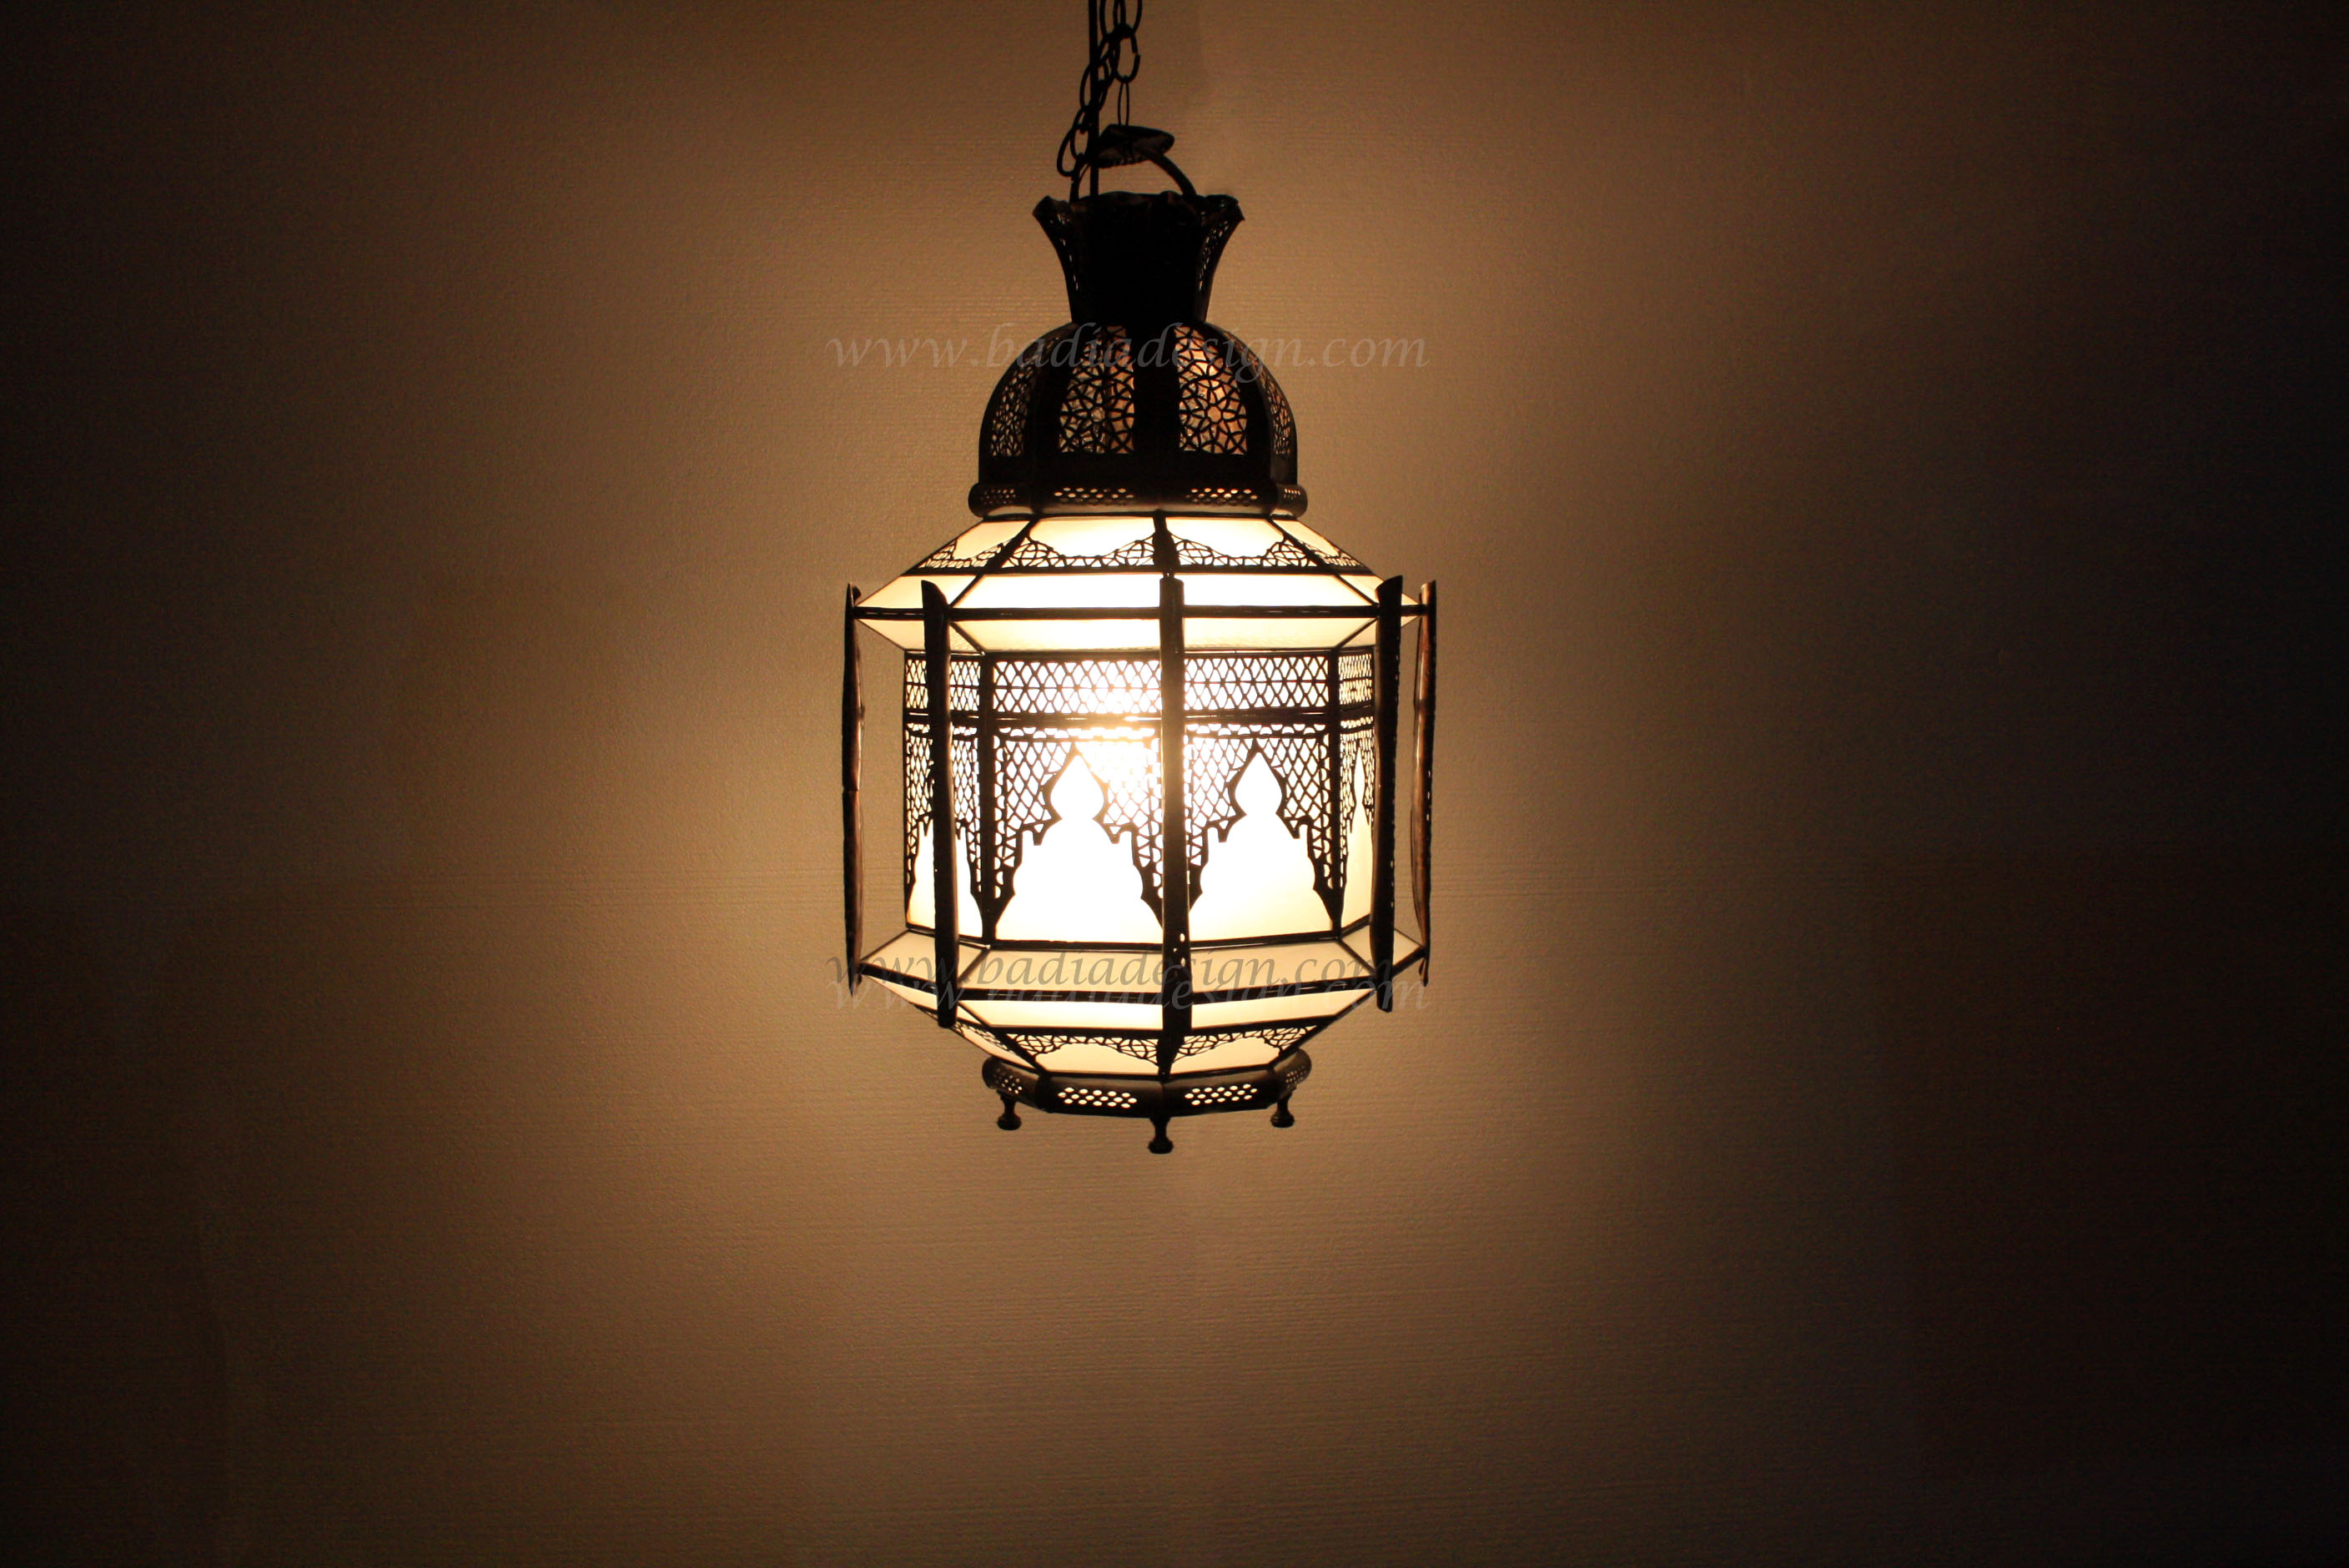 moroccan-lighting-phoenix-lig170.jpg